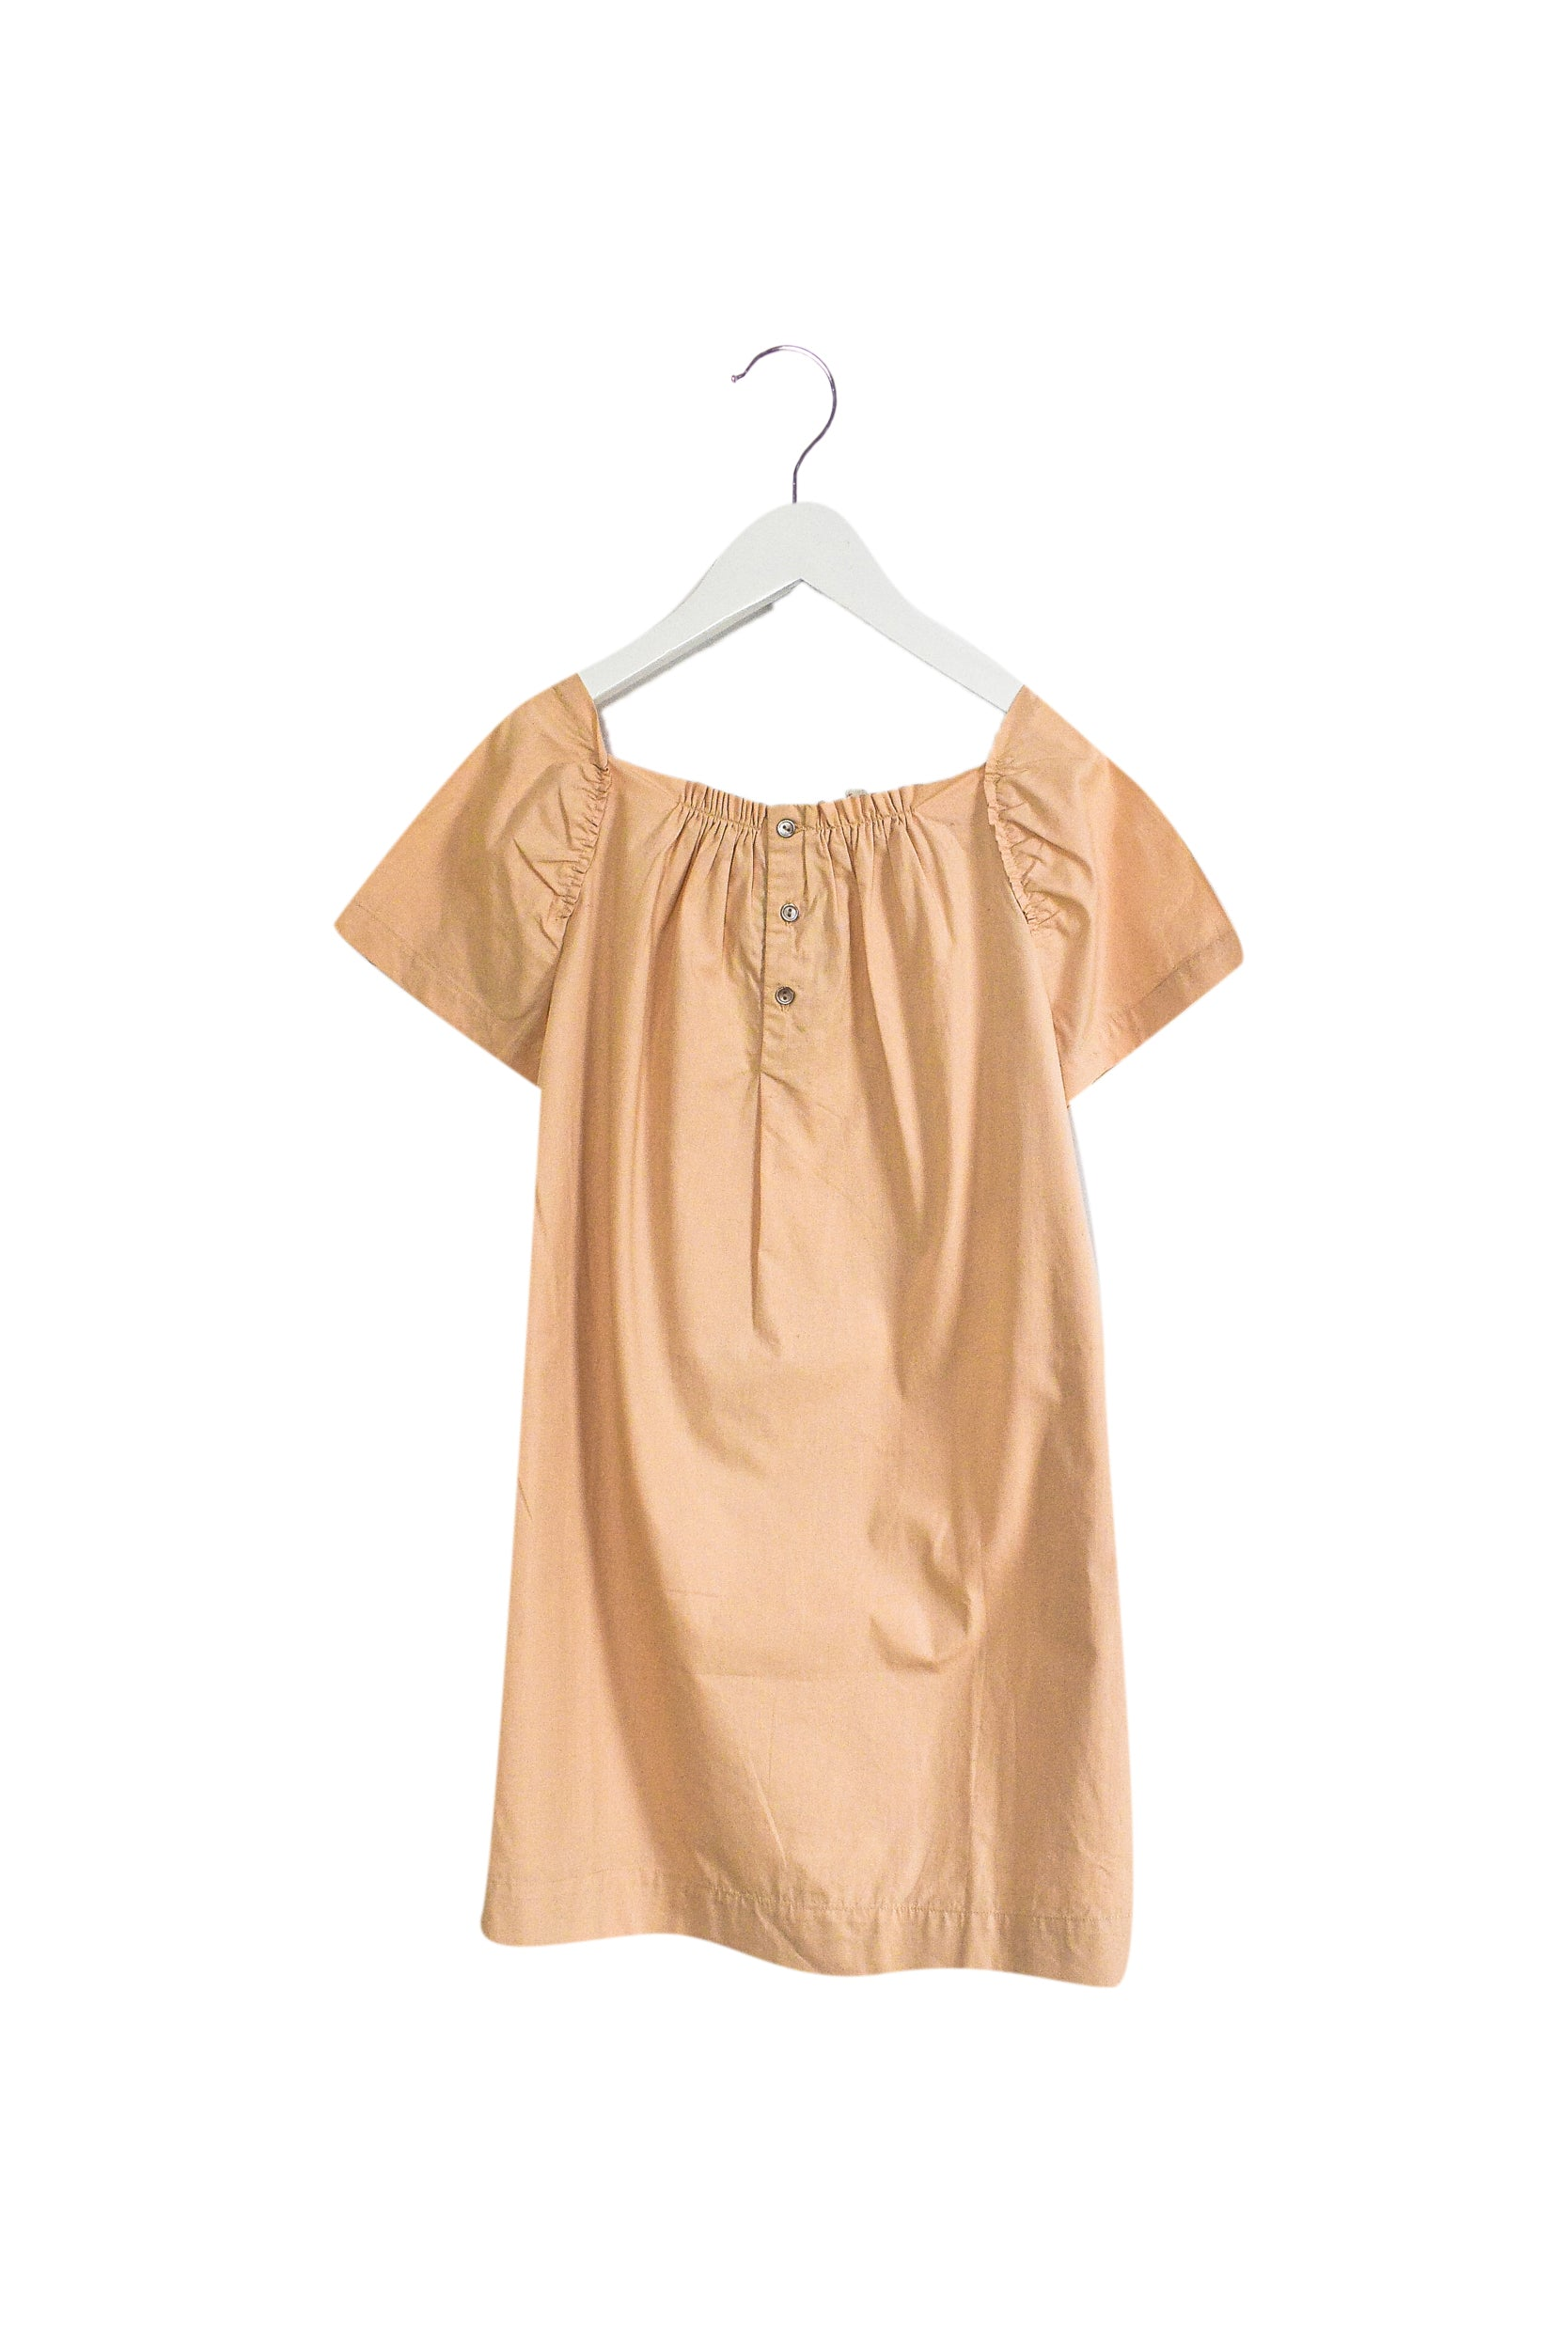 Short Sleeve Dress 8Y at Retykle